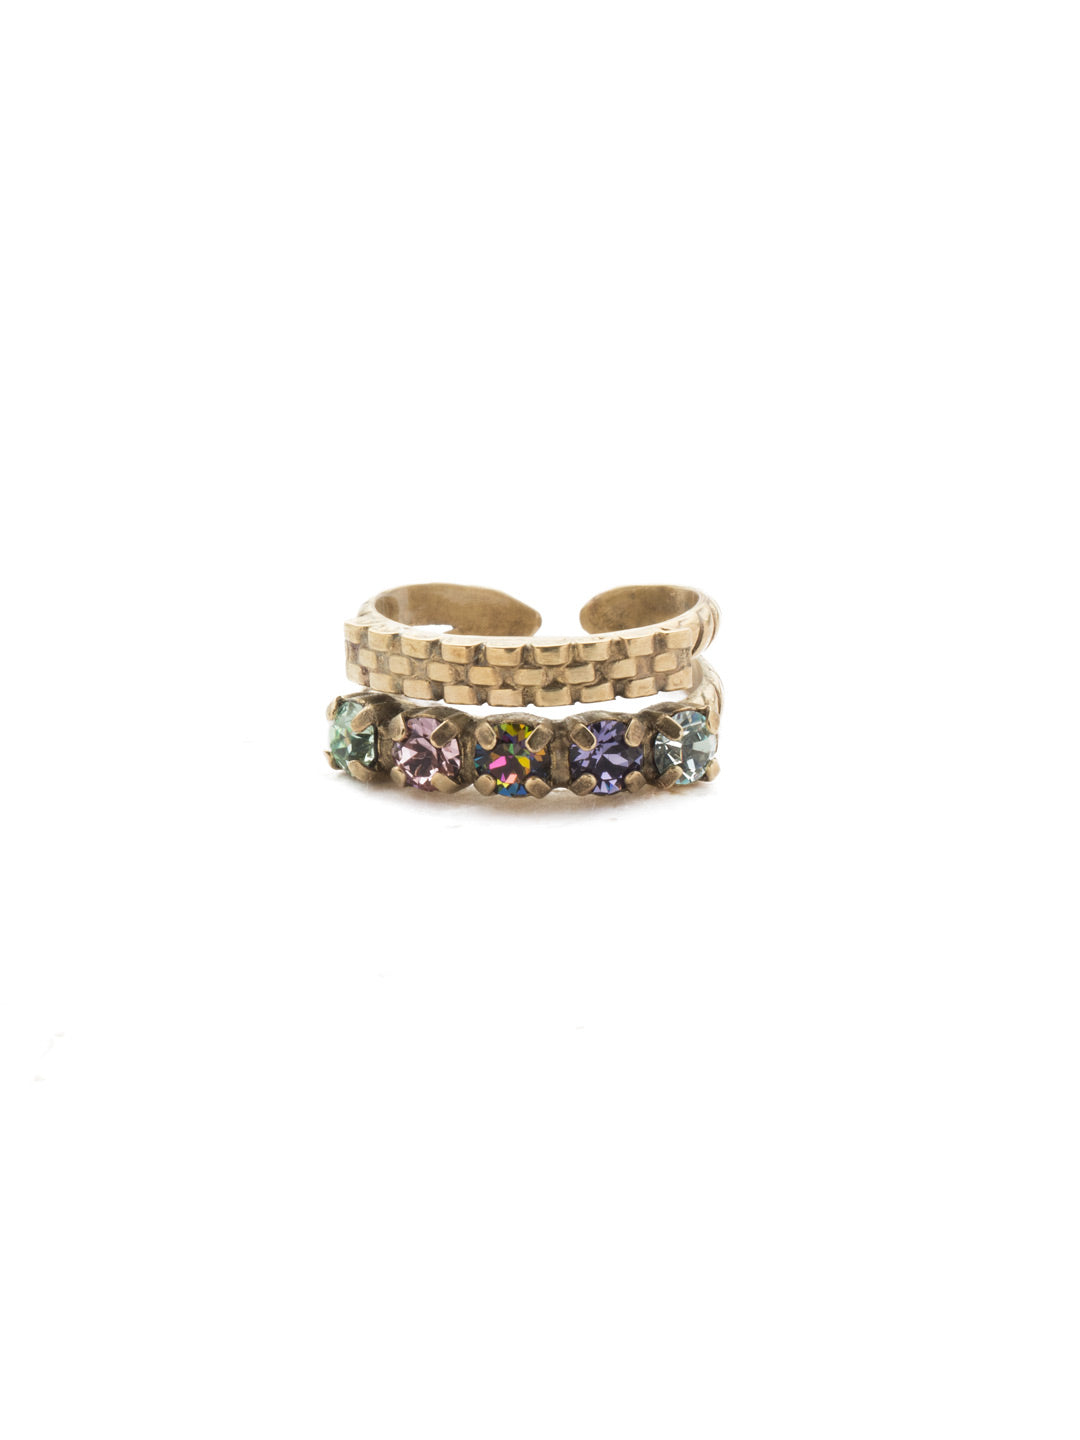 Luann Stacked Ring - REN9AGIRB